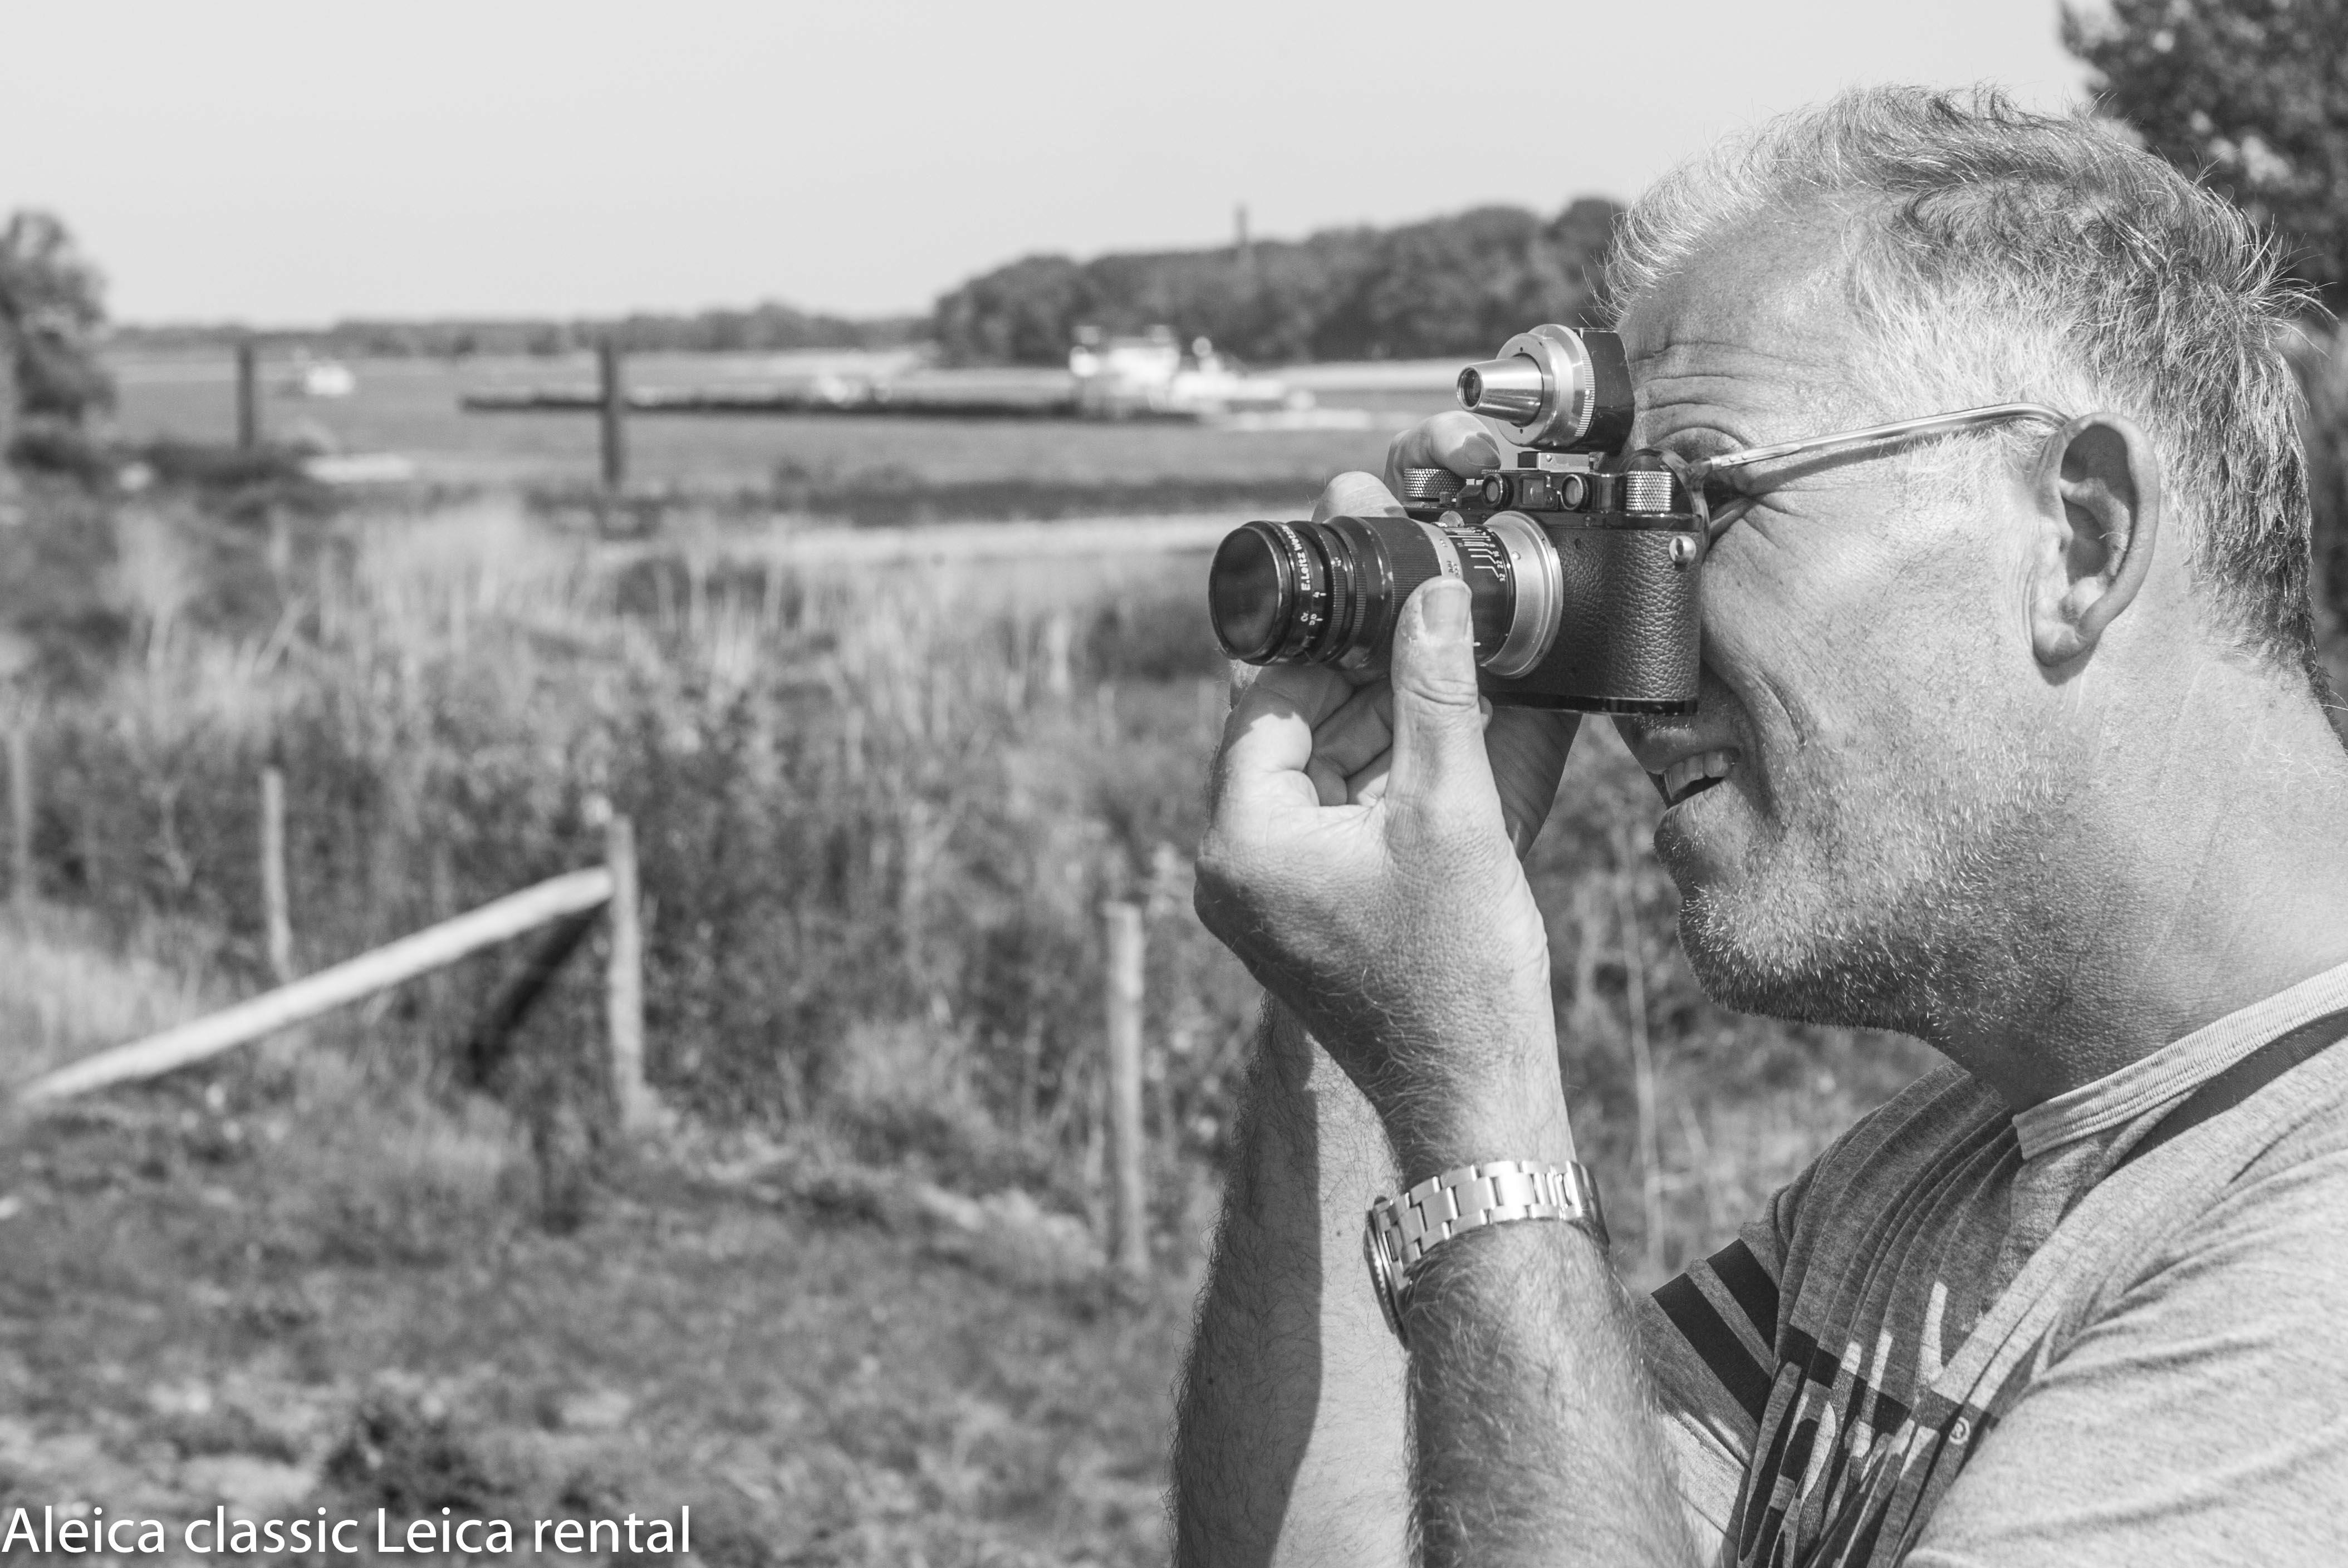 Gendtse polder workshop